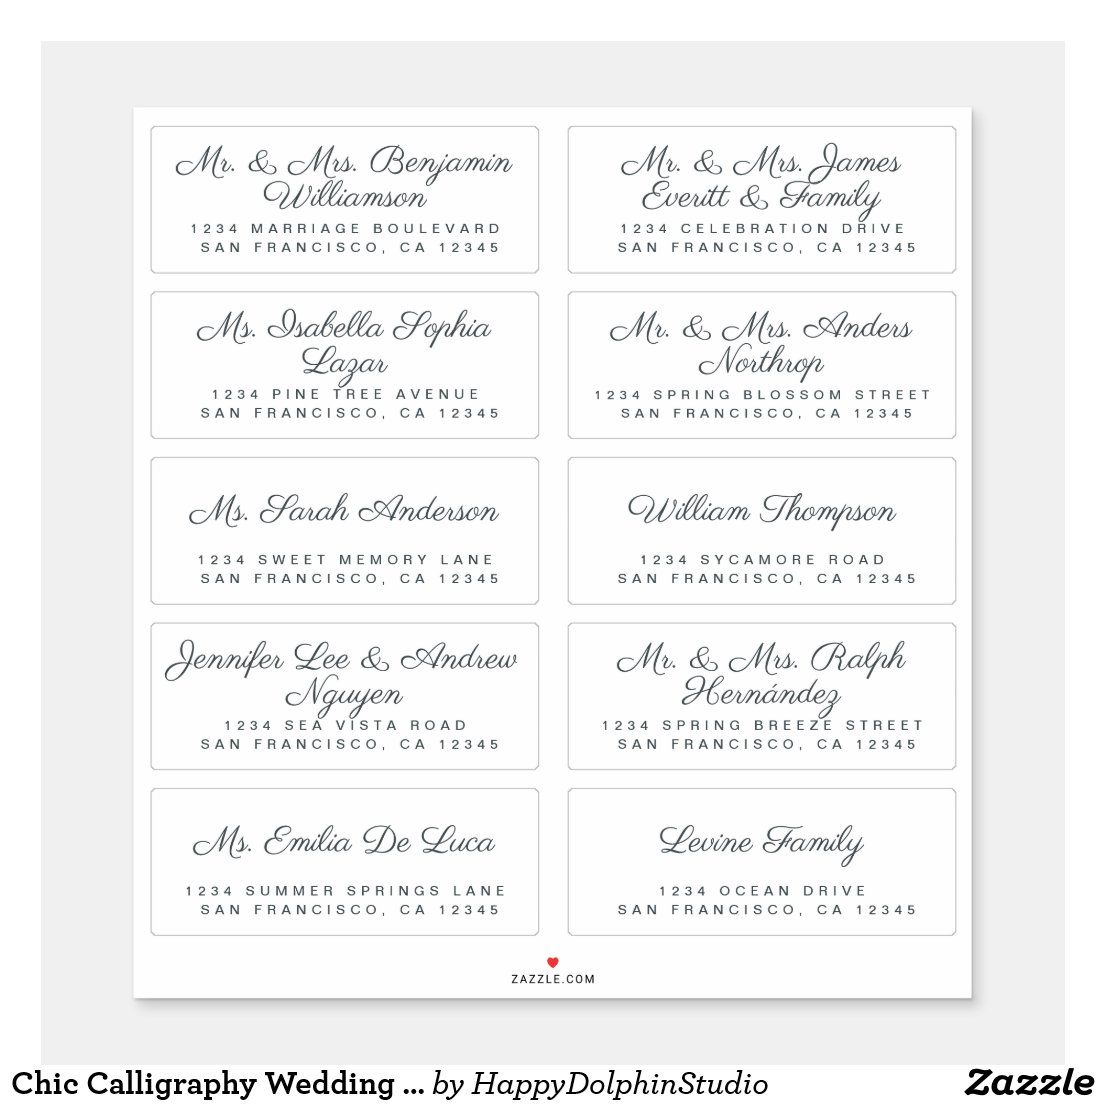 Wrap Around Address Label So Simple With The Color Added Just In A Thin Line Wedding Address Labels Addressing Wedding Invitations Addressing Envelopes